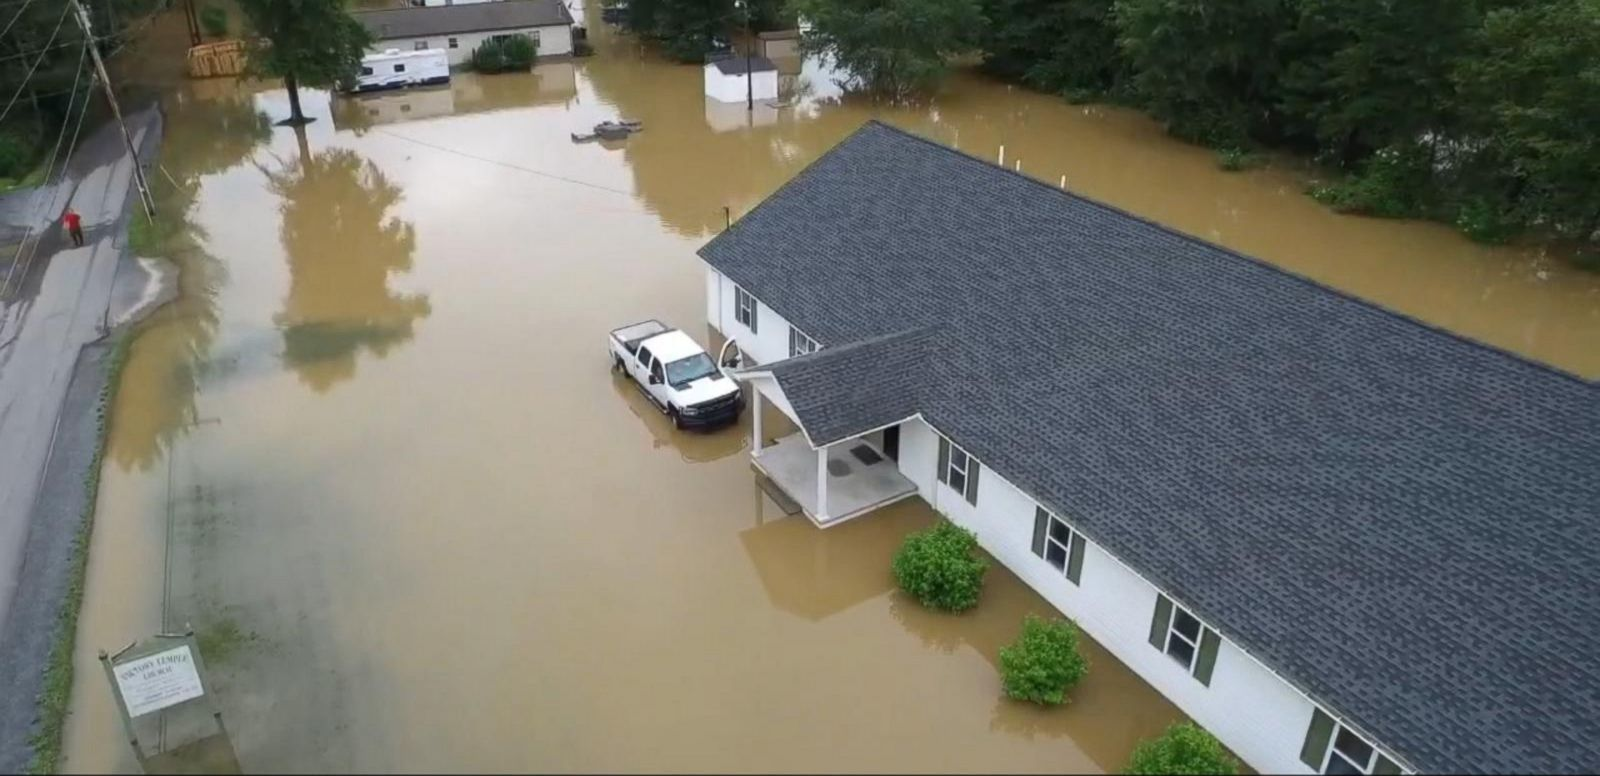 VIDEO: Deadly Flooding Kills at Least 19 People Including a Toddler, Many Others Missing